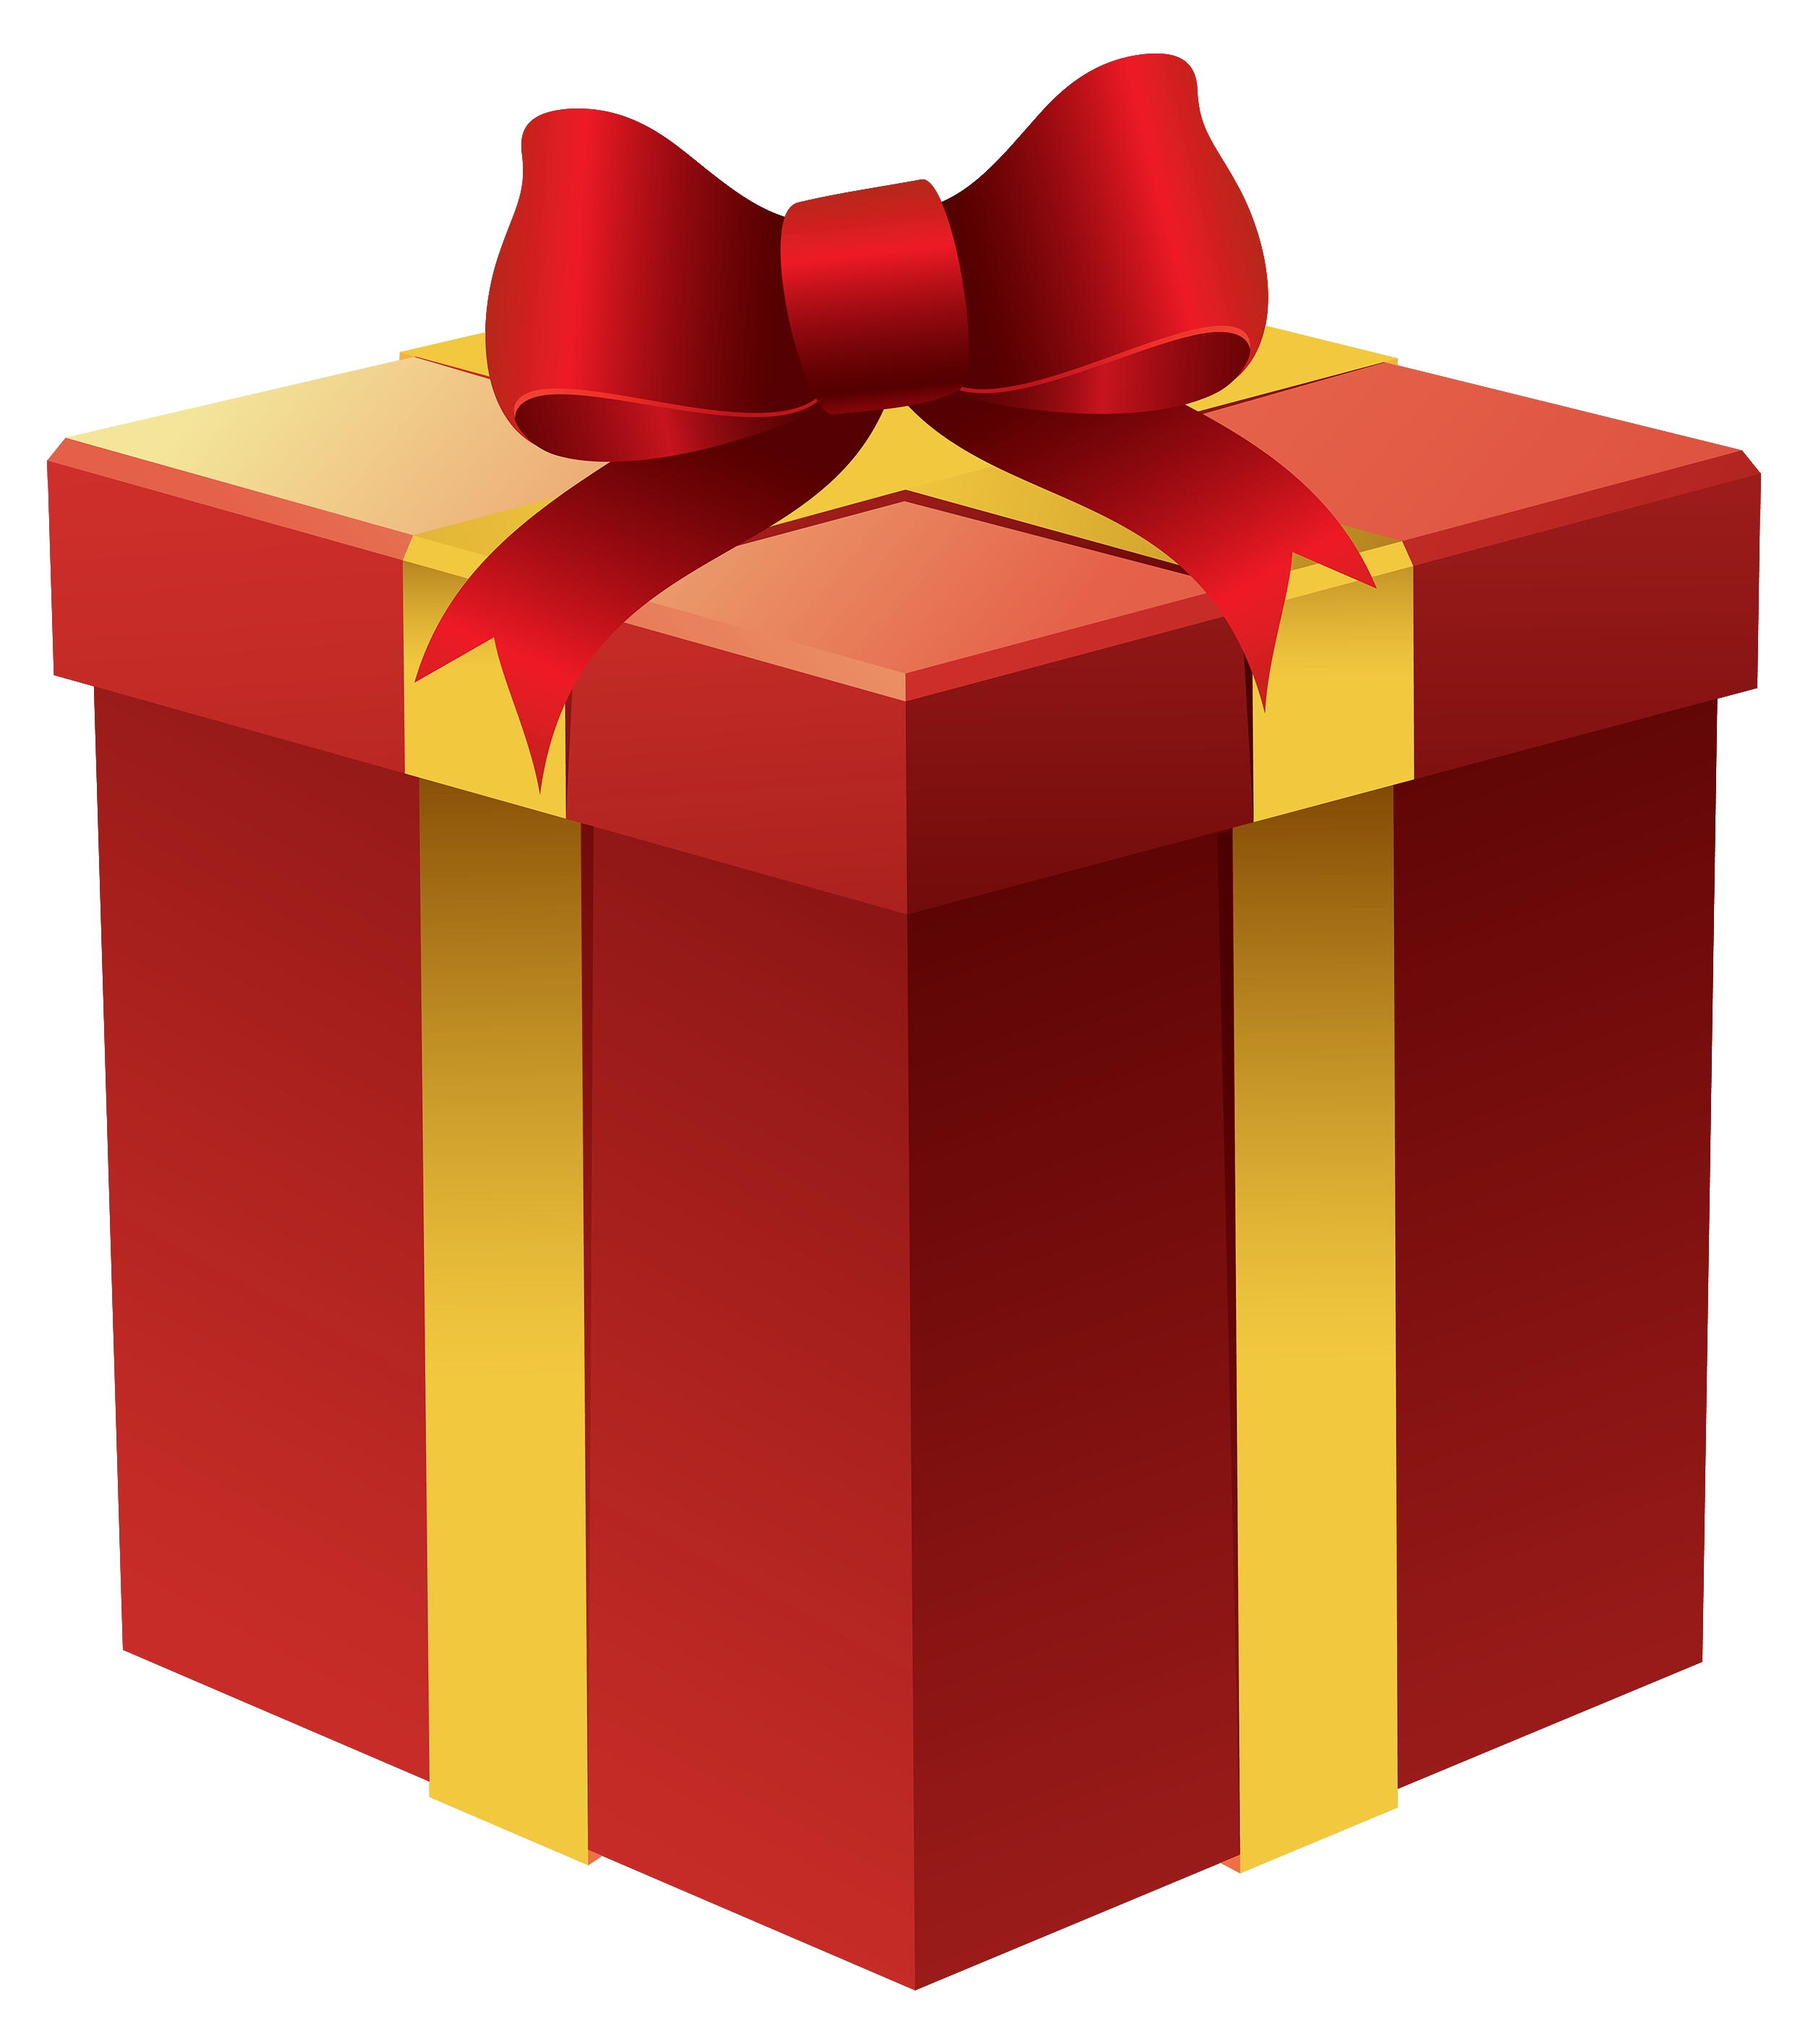 Parcel clipart gift Clipart Collection clipart Gift